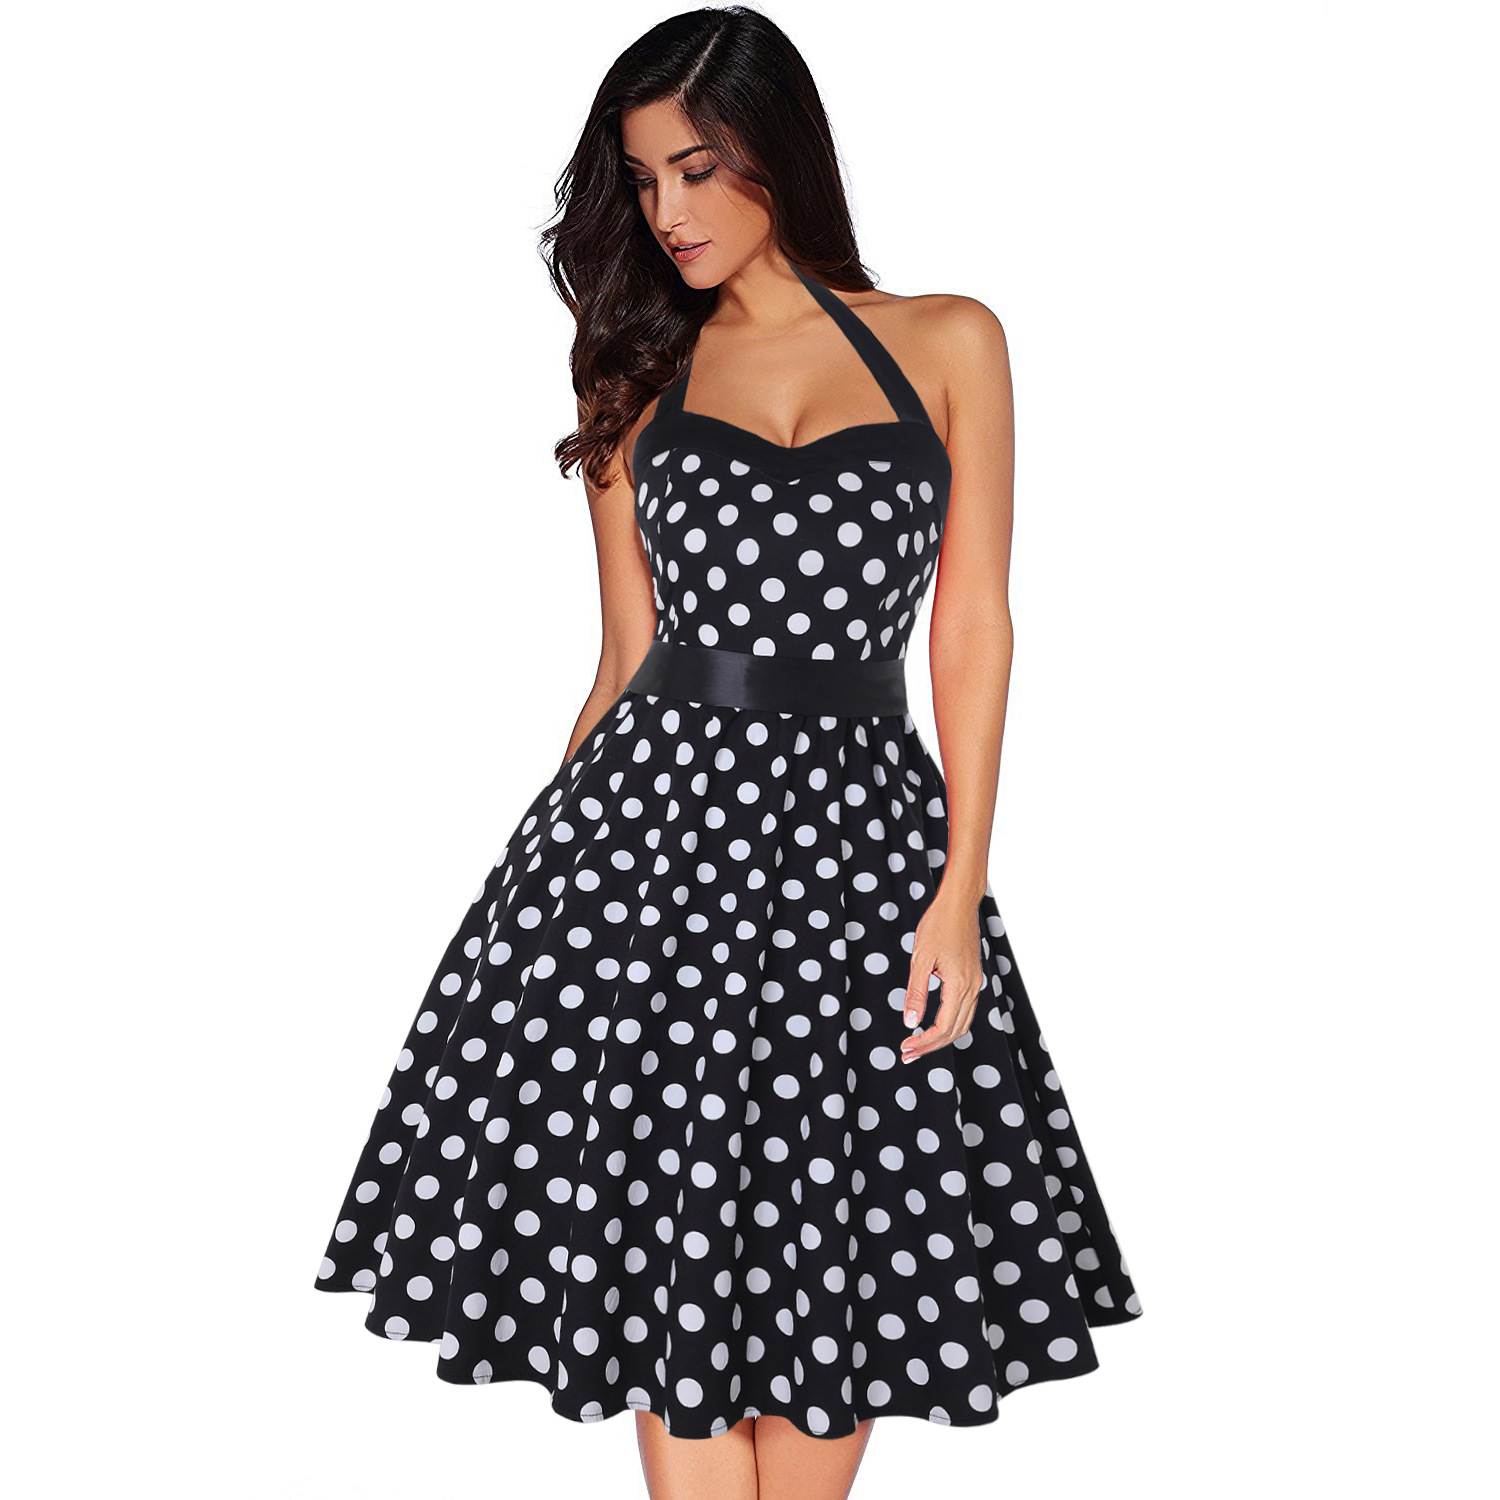 2019 Amazon Produkt Quelle Gelb Frauen 1950 s Rockabilly Audrey Kleid Polka Dot Vintage Frauen Kleid